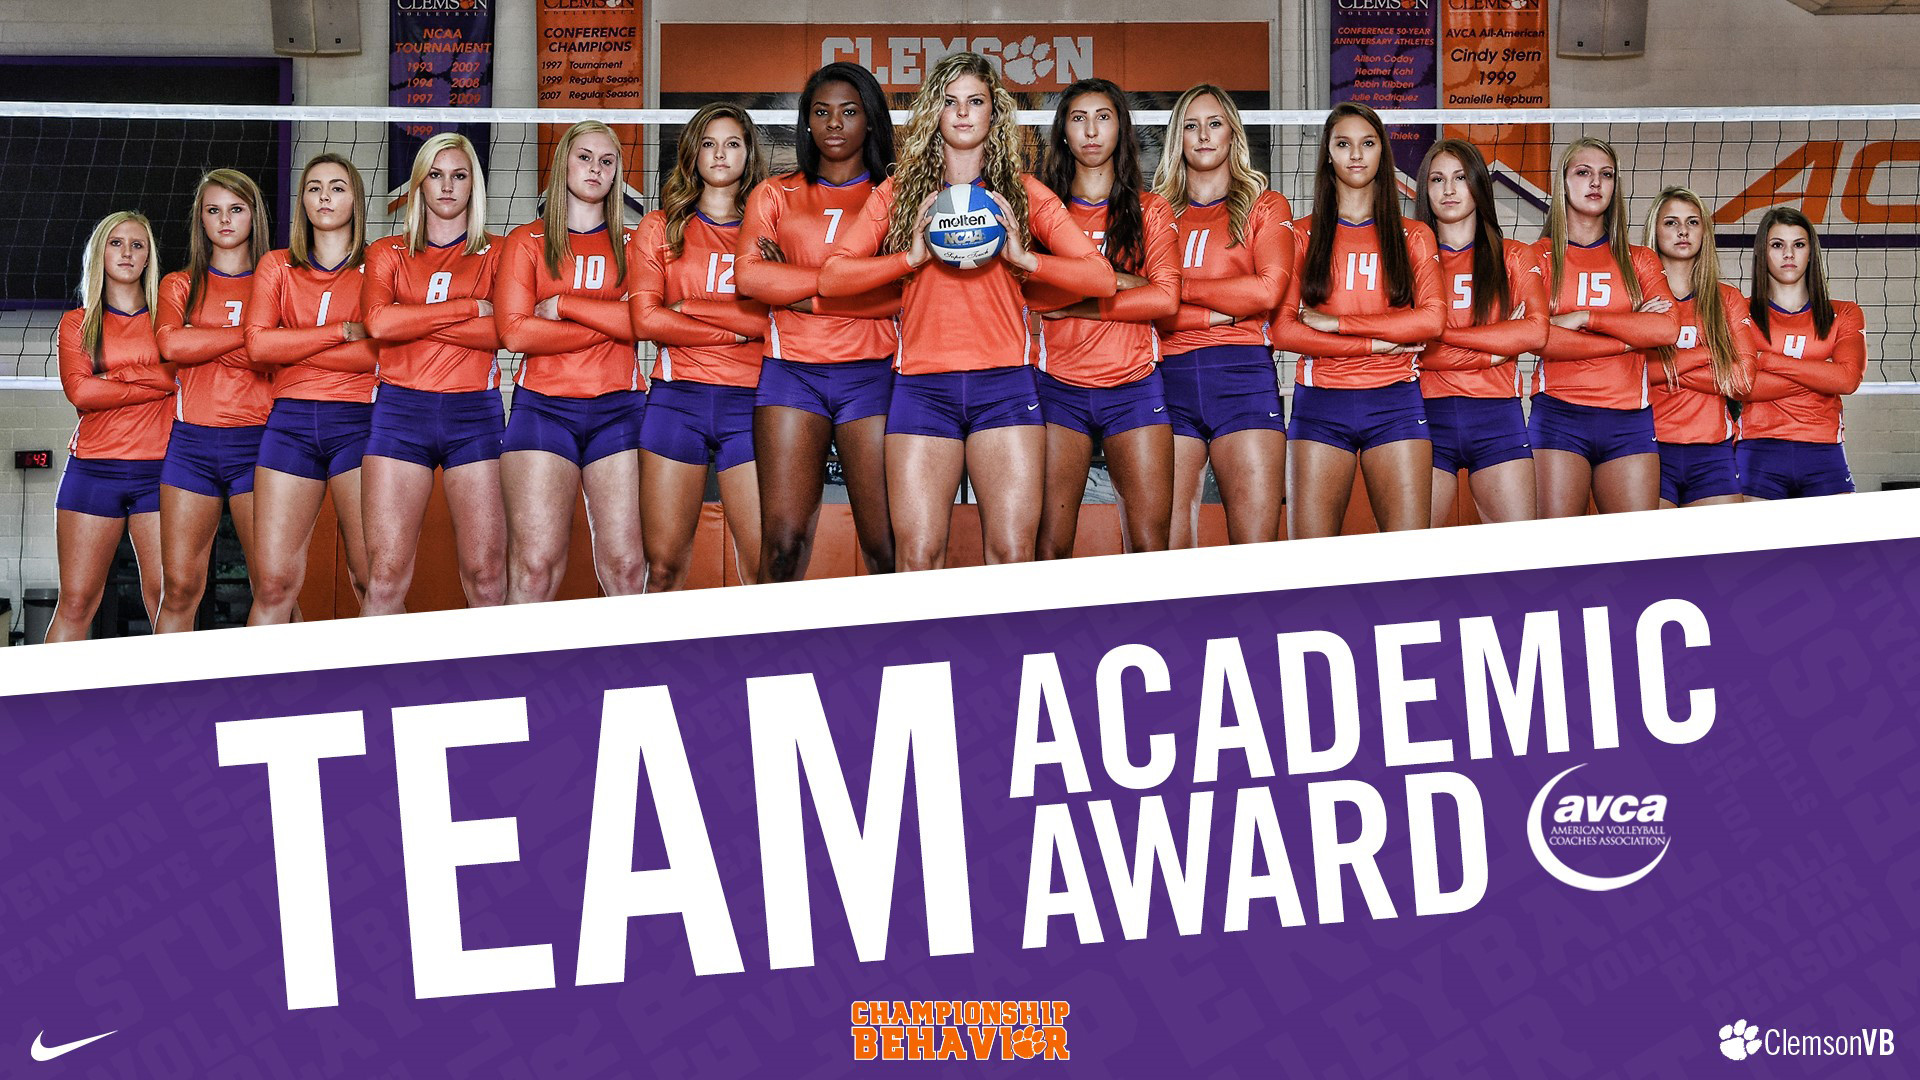 Clemson Volleyball Earns 2016-17 AVCA Team Academic Award, First Time in Program History